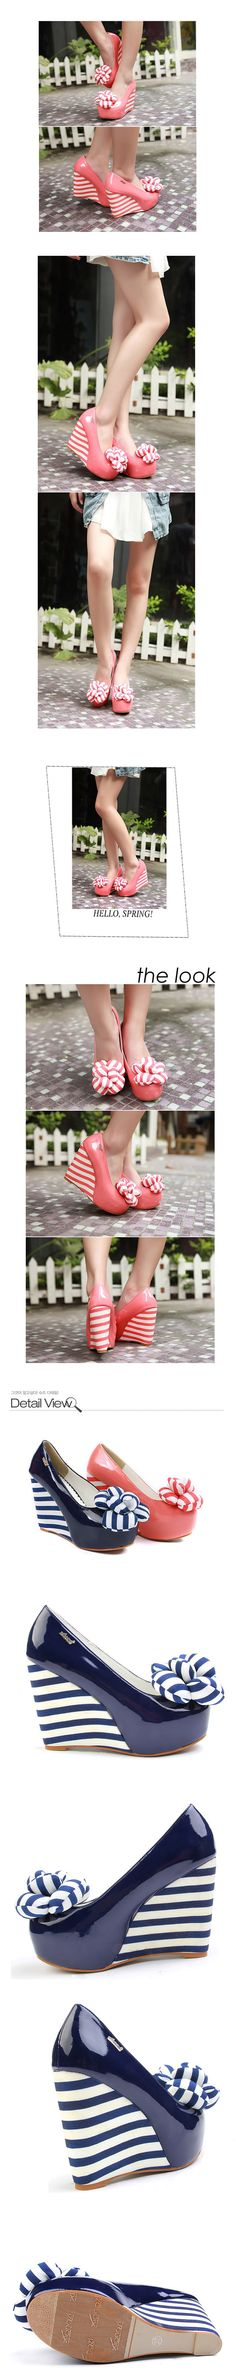 I never into pink...i still not ok with princess pink or shocking pink..but i became fine with fuchia, salem and peach...and i start wearing heels lately this shoes are cute [Circus Carnival Gothic Lolita Striped Puff Flower Platform High Heel Wedge Pink | eBay]